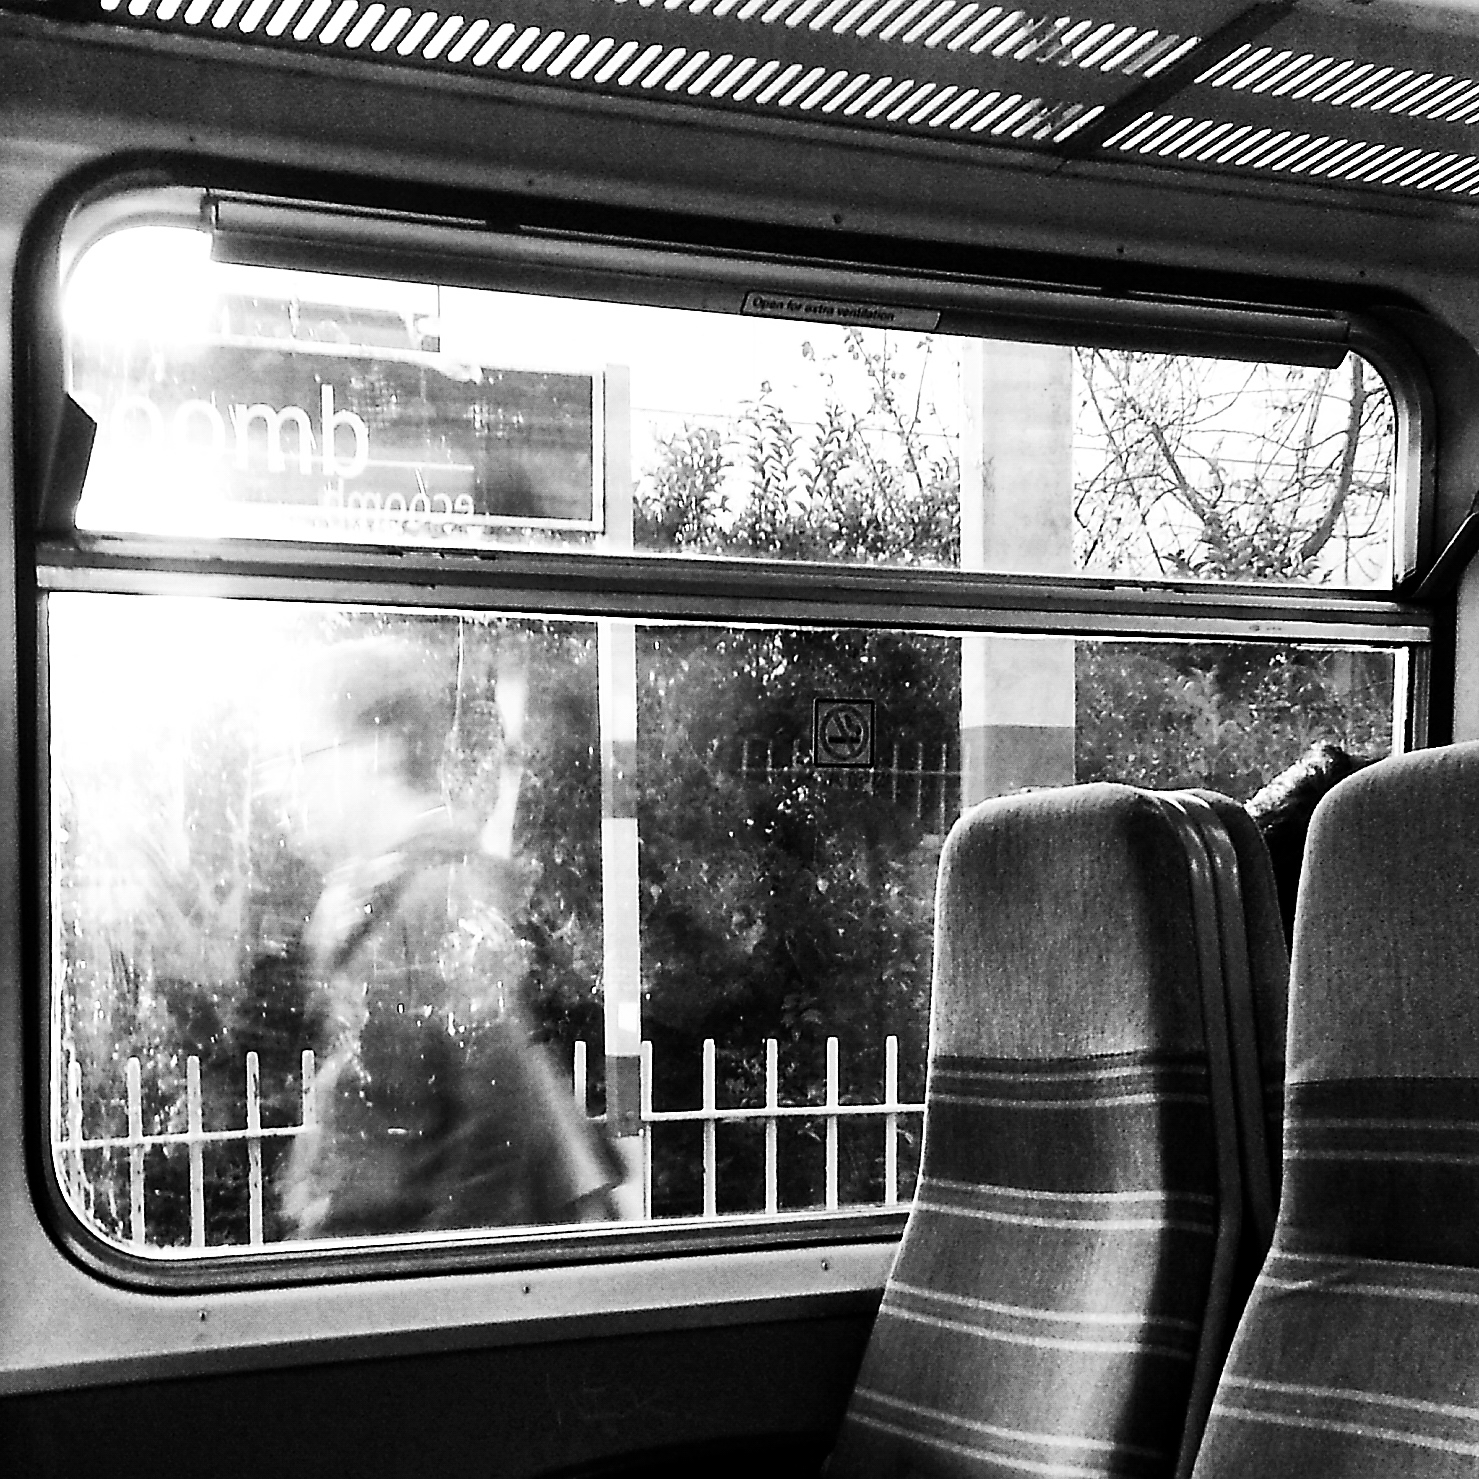 Commute 9 - Woman shrouded in morning light